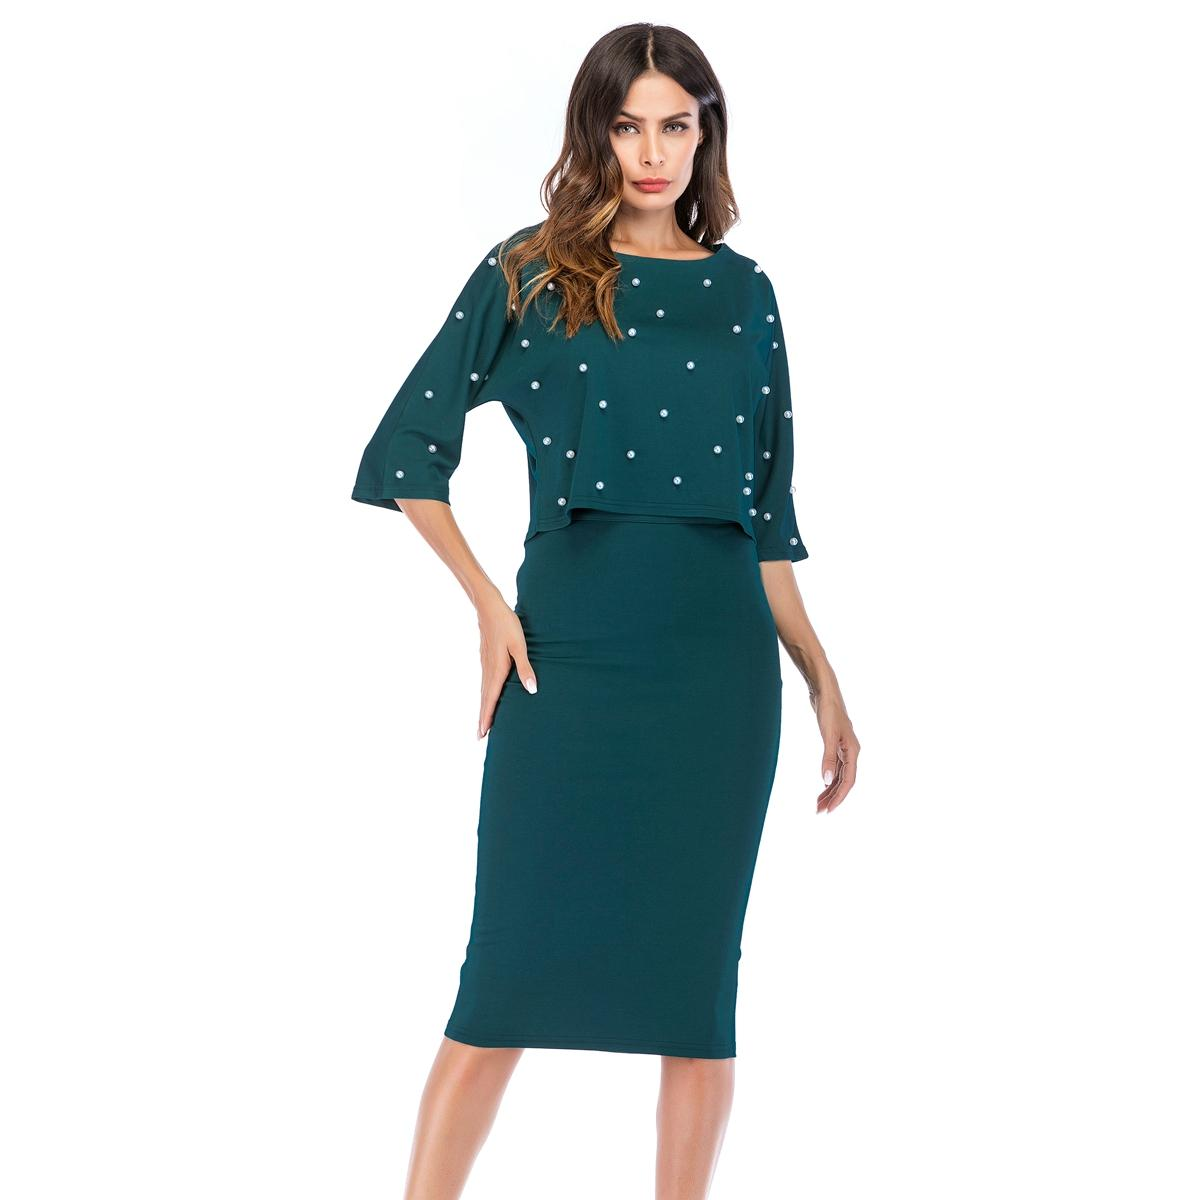 Top Skirt Set Bodycon Party Cocktail Skirt Fashion Beads Blouse 3/4 Sleeves Dark Green Outfit Casual Women 2 Piece Sets 8712